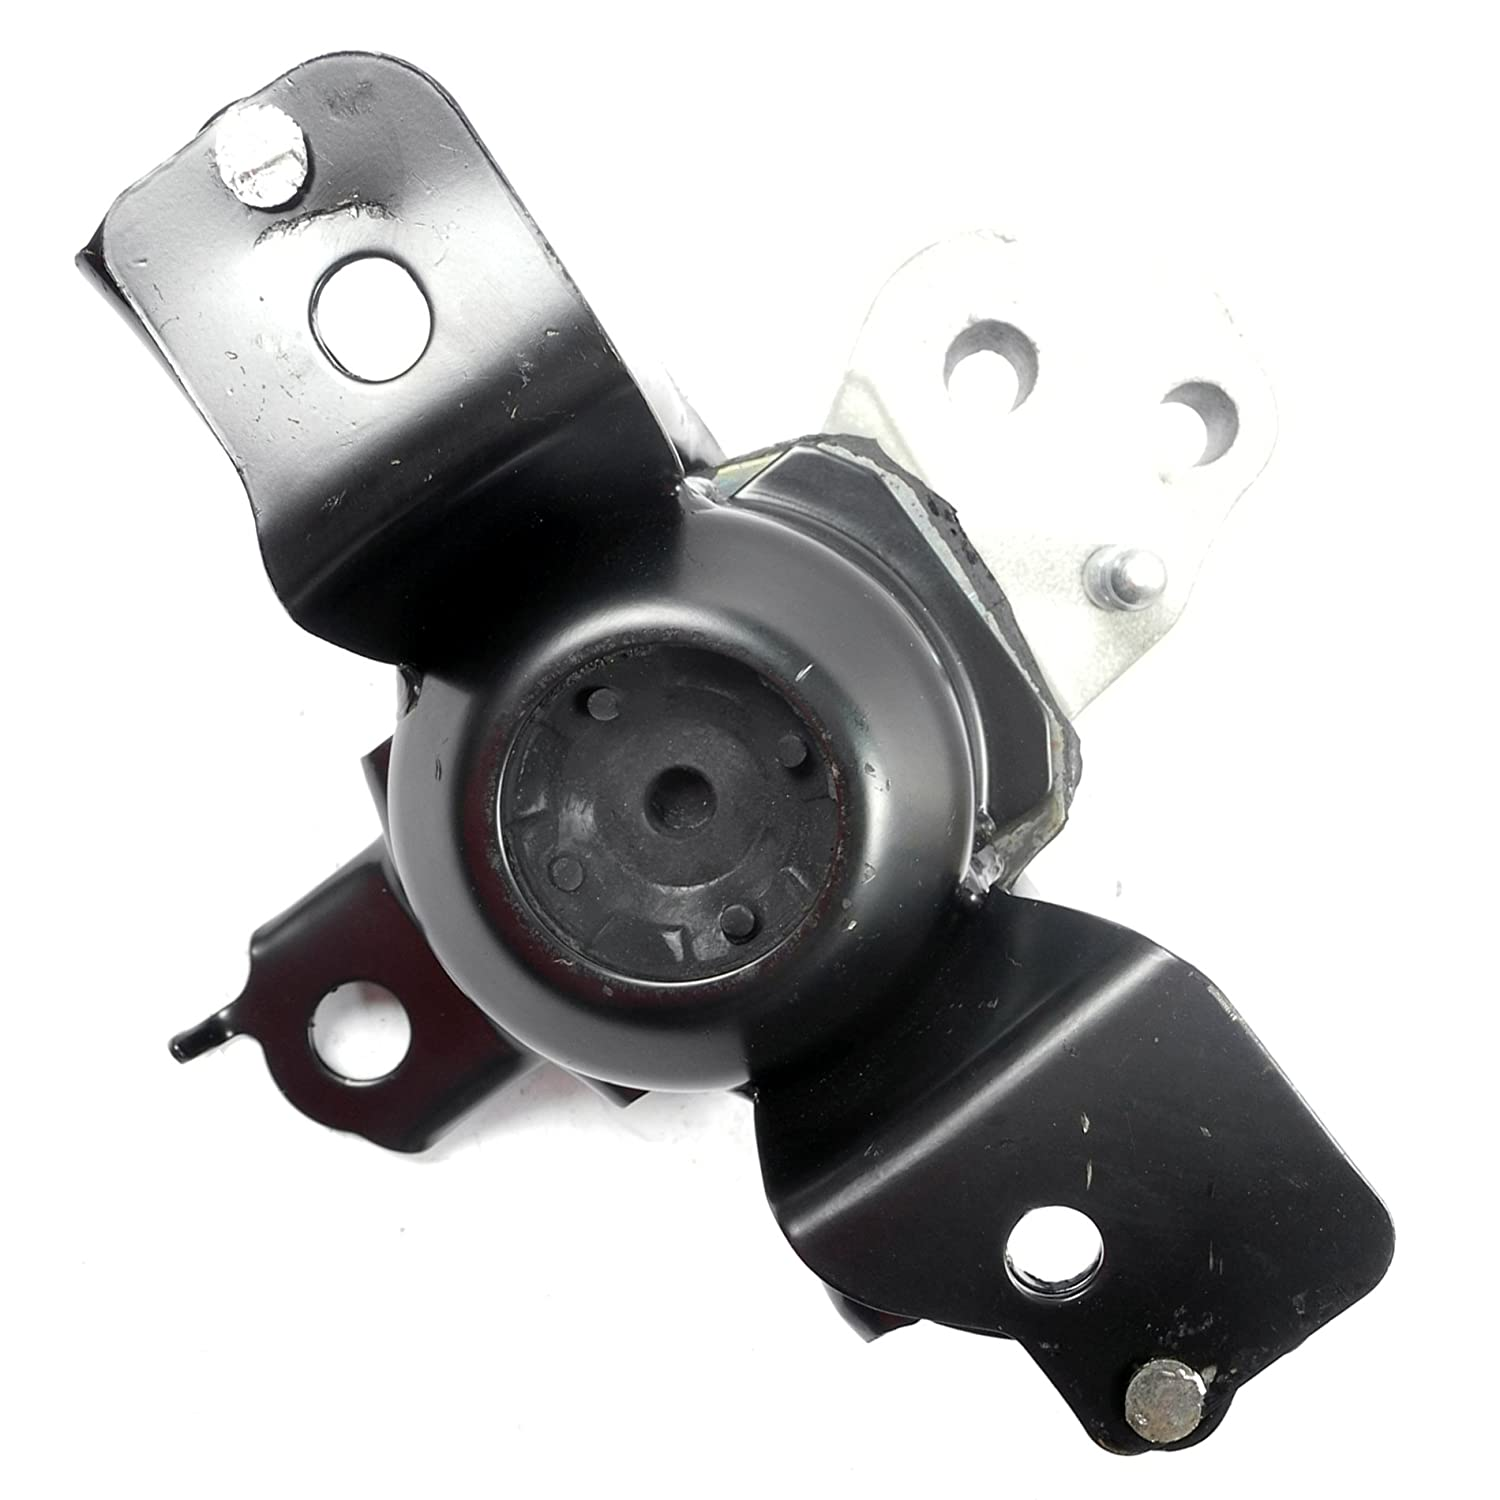 For Front 04 05 06-09 Toyota Prius 1.5L 4248 Engine Motor Mount 04 05 06 07 08 09